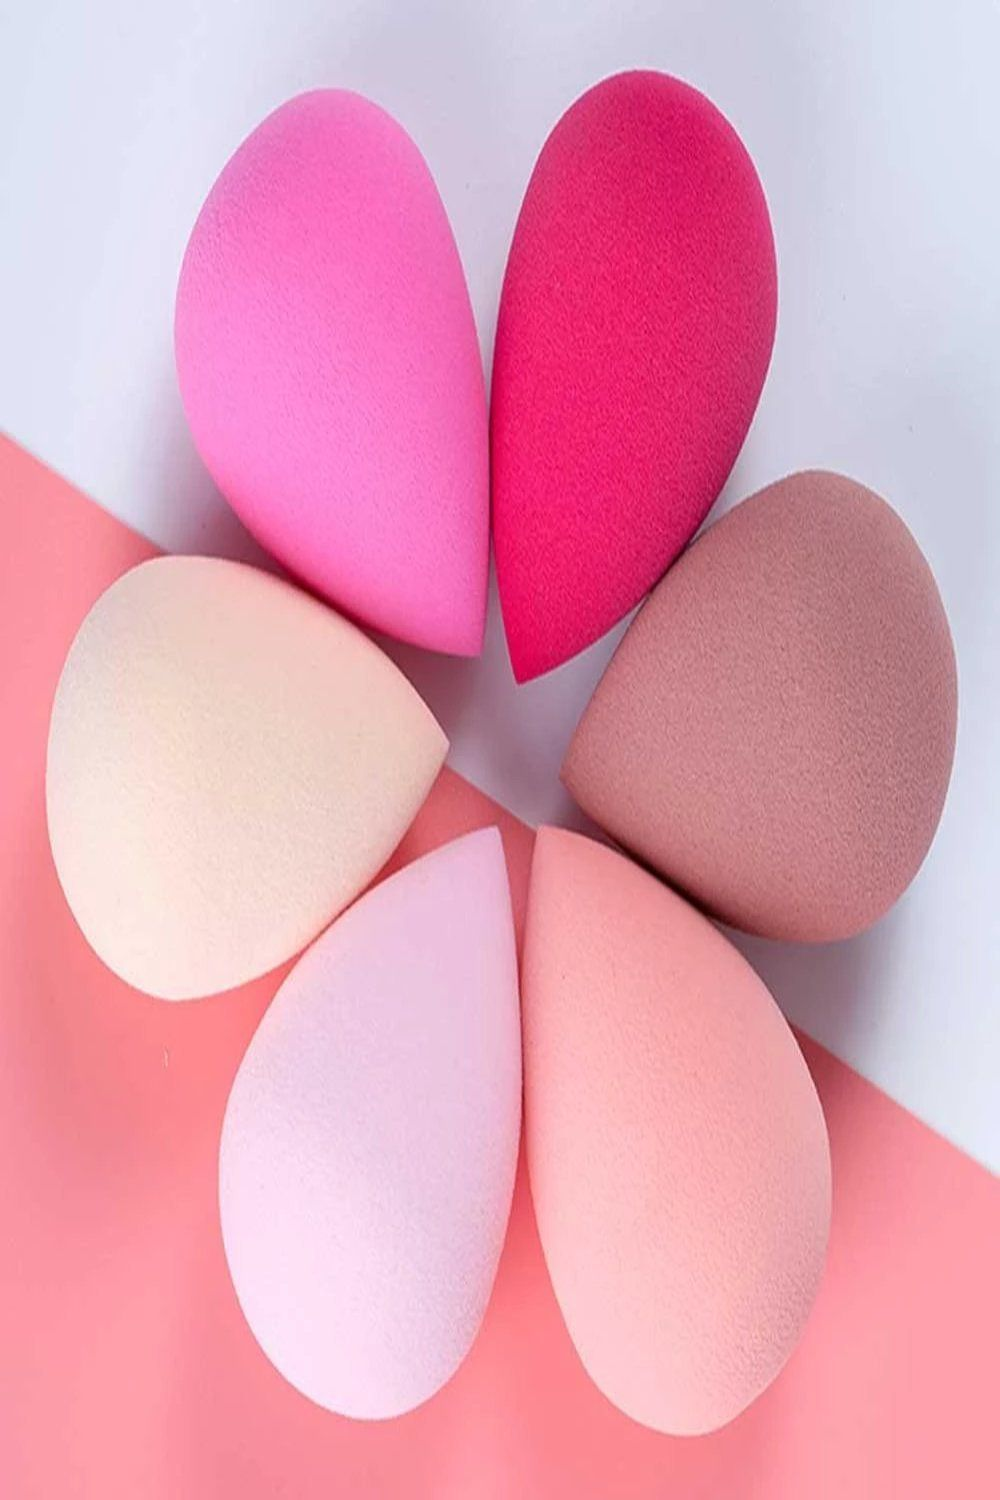 Makeup Sponge Professional Cosmetic Puff For Foundation